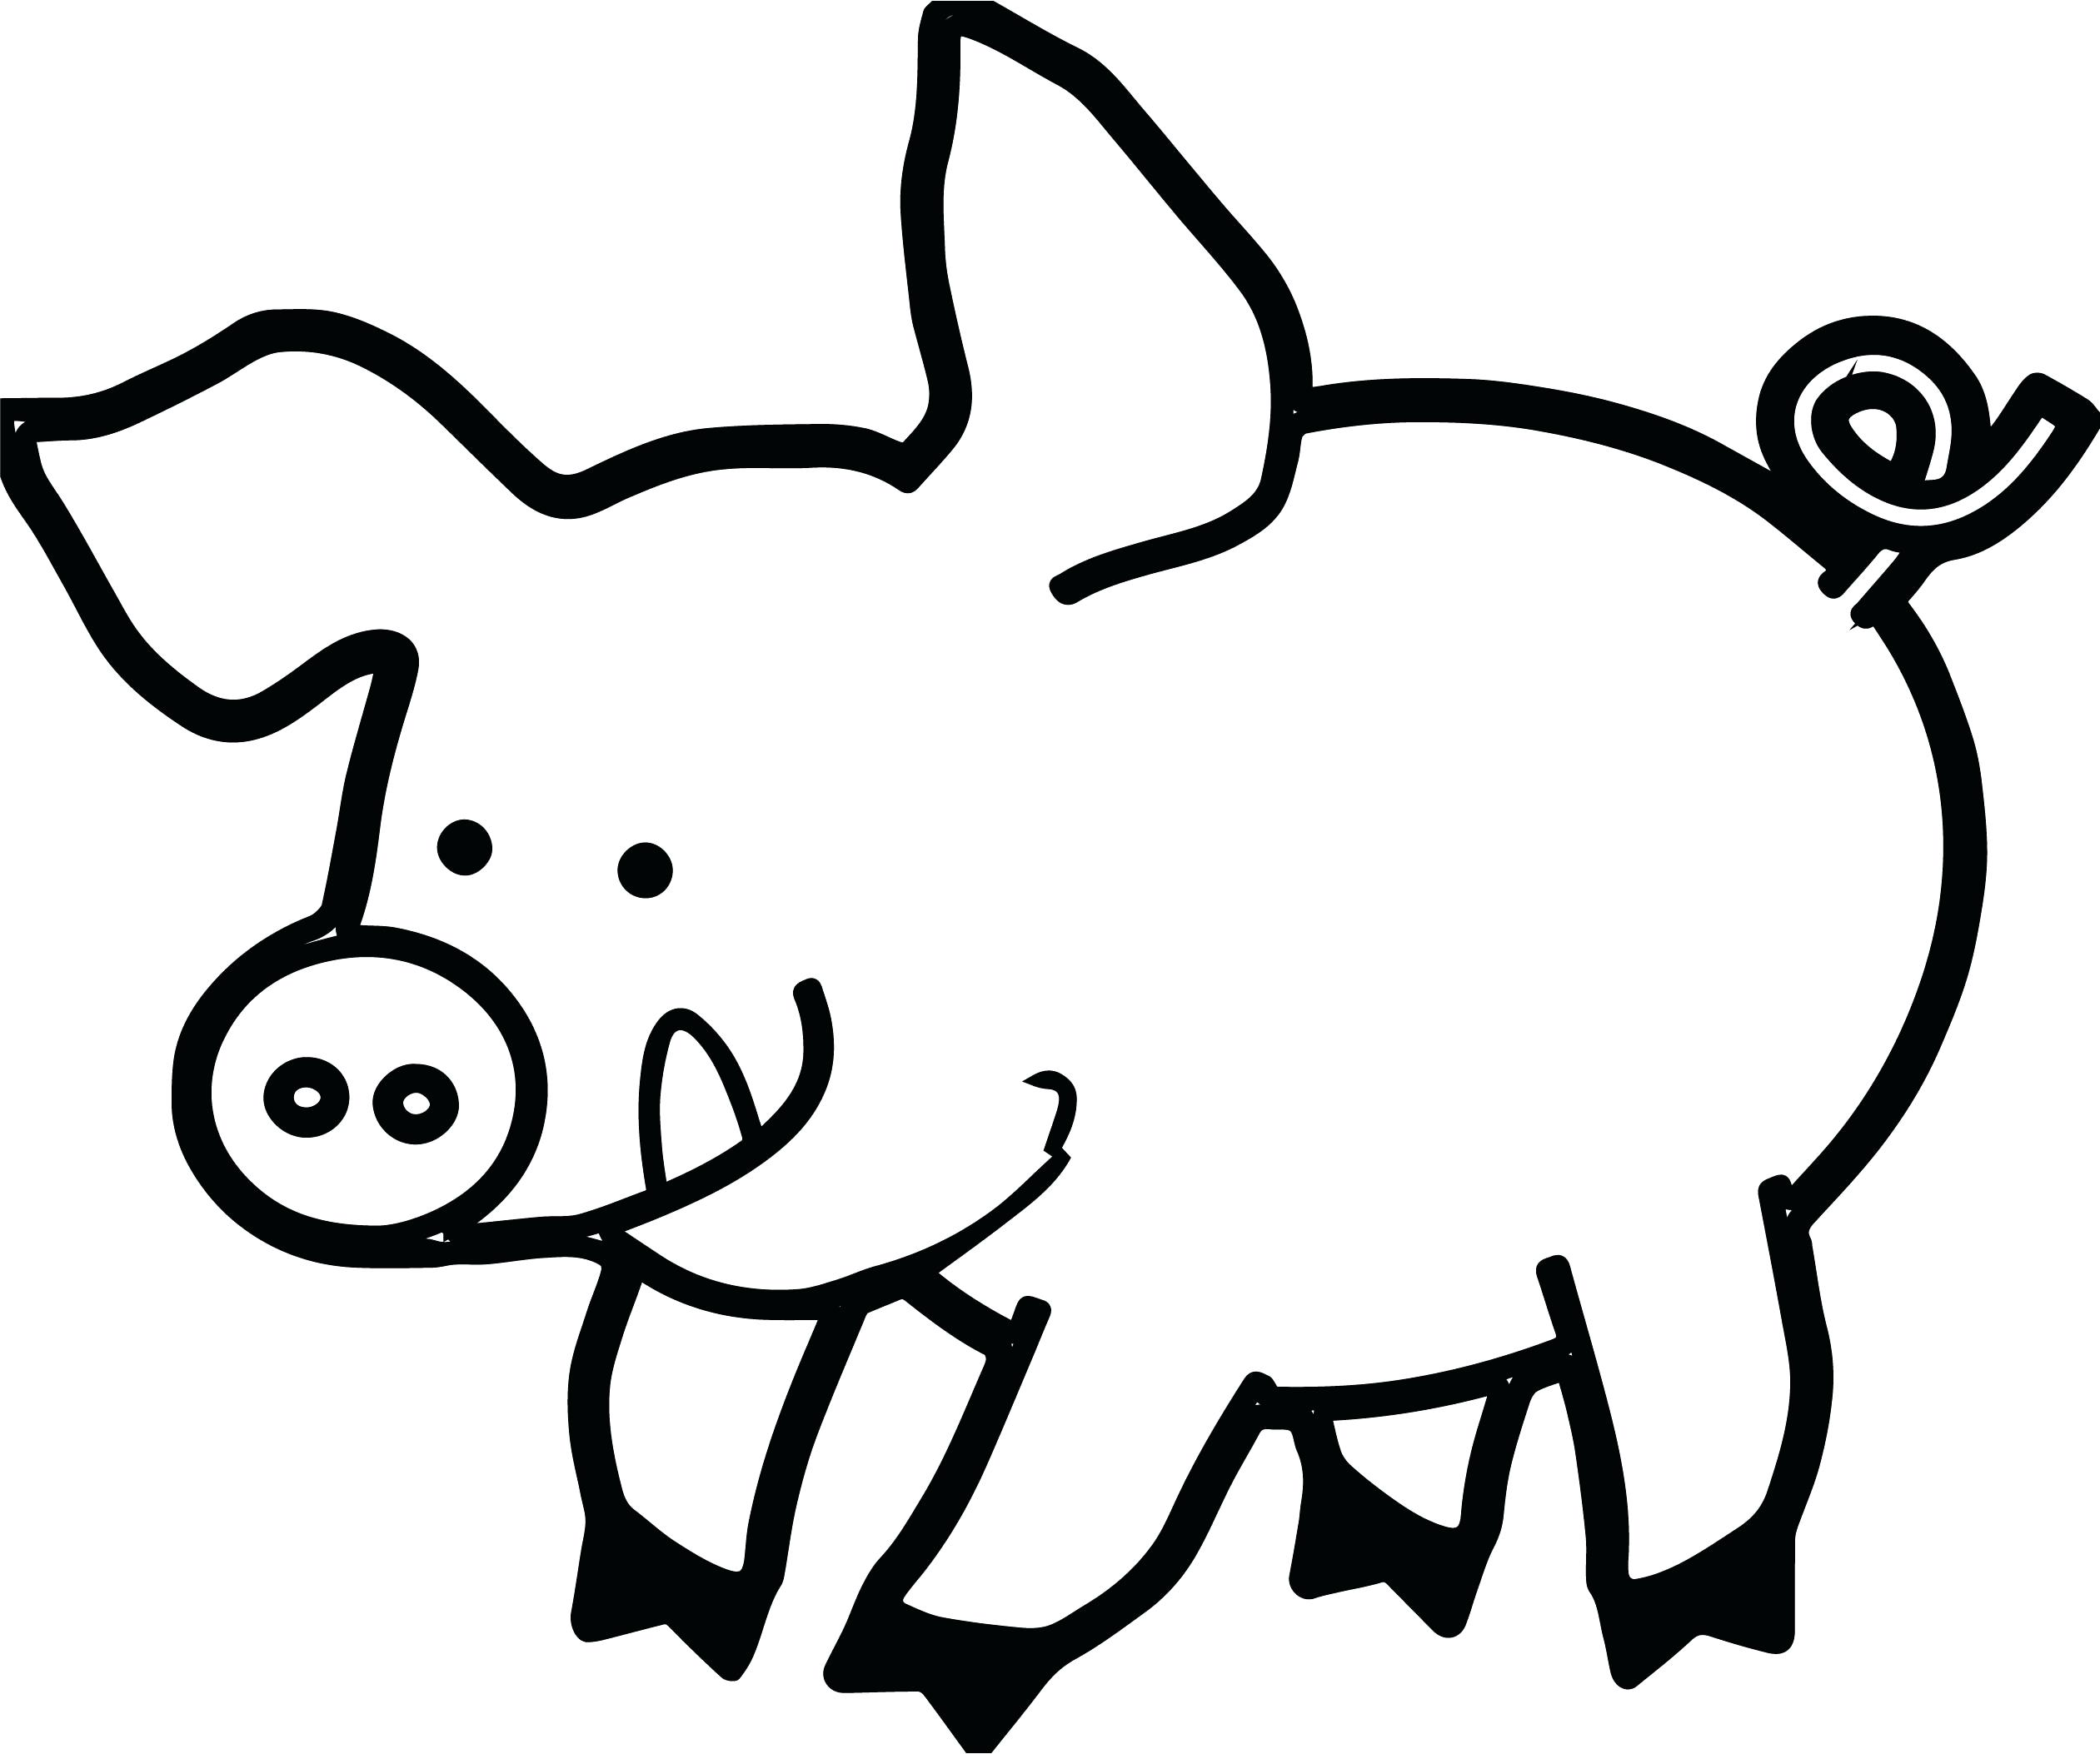 Face drawing at getdrawings. Pig clip art black and white vector stock